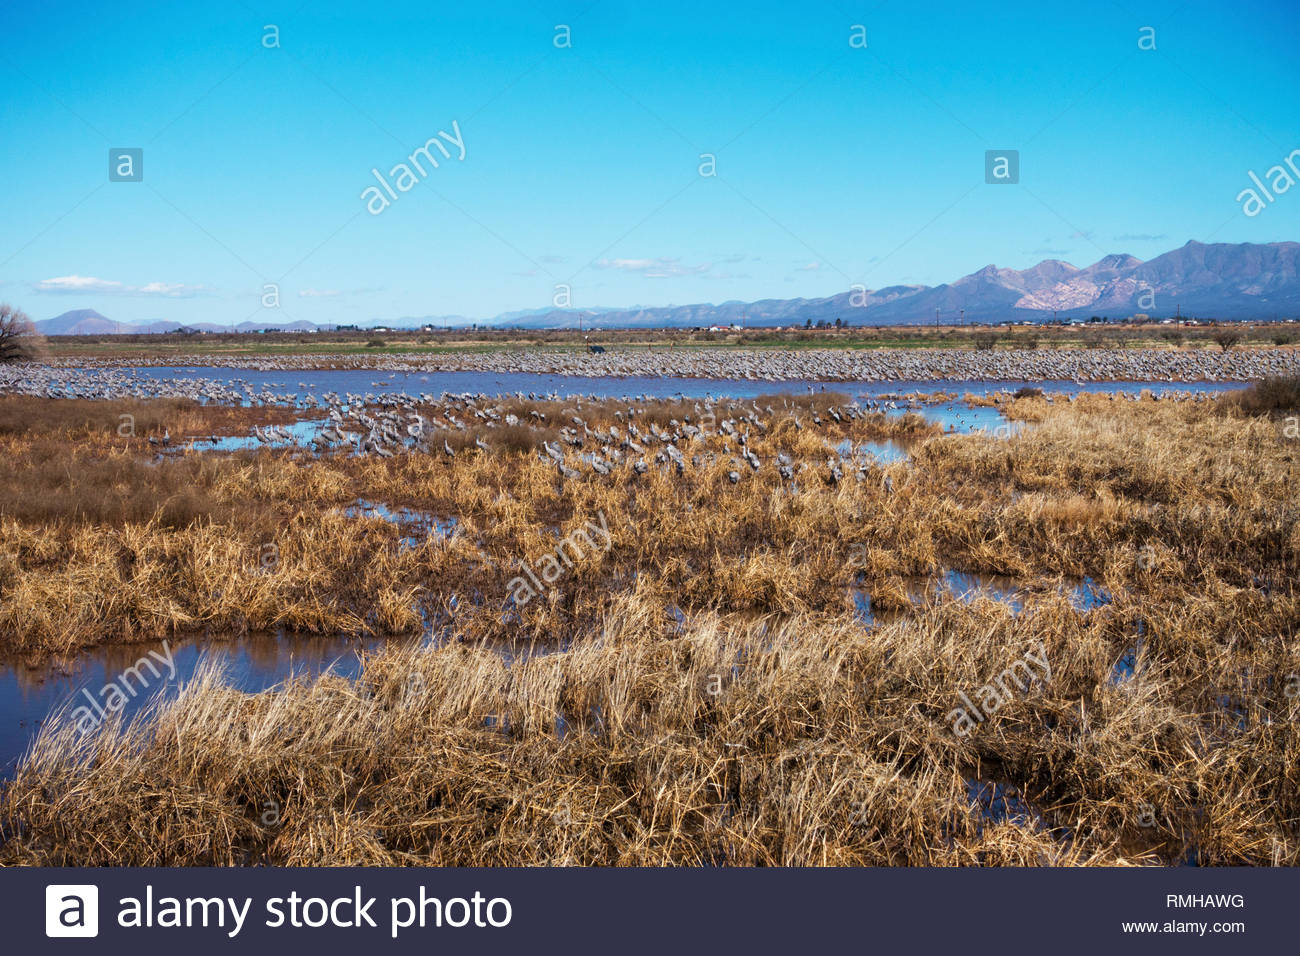 Sandhill Cranes in pond at Whitewater Draw Wildlife Area